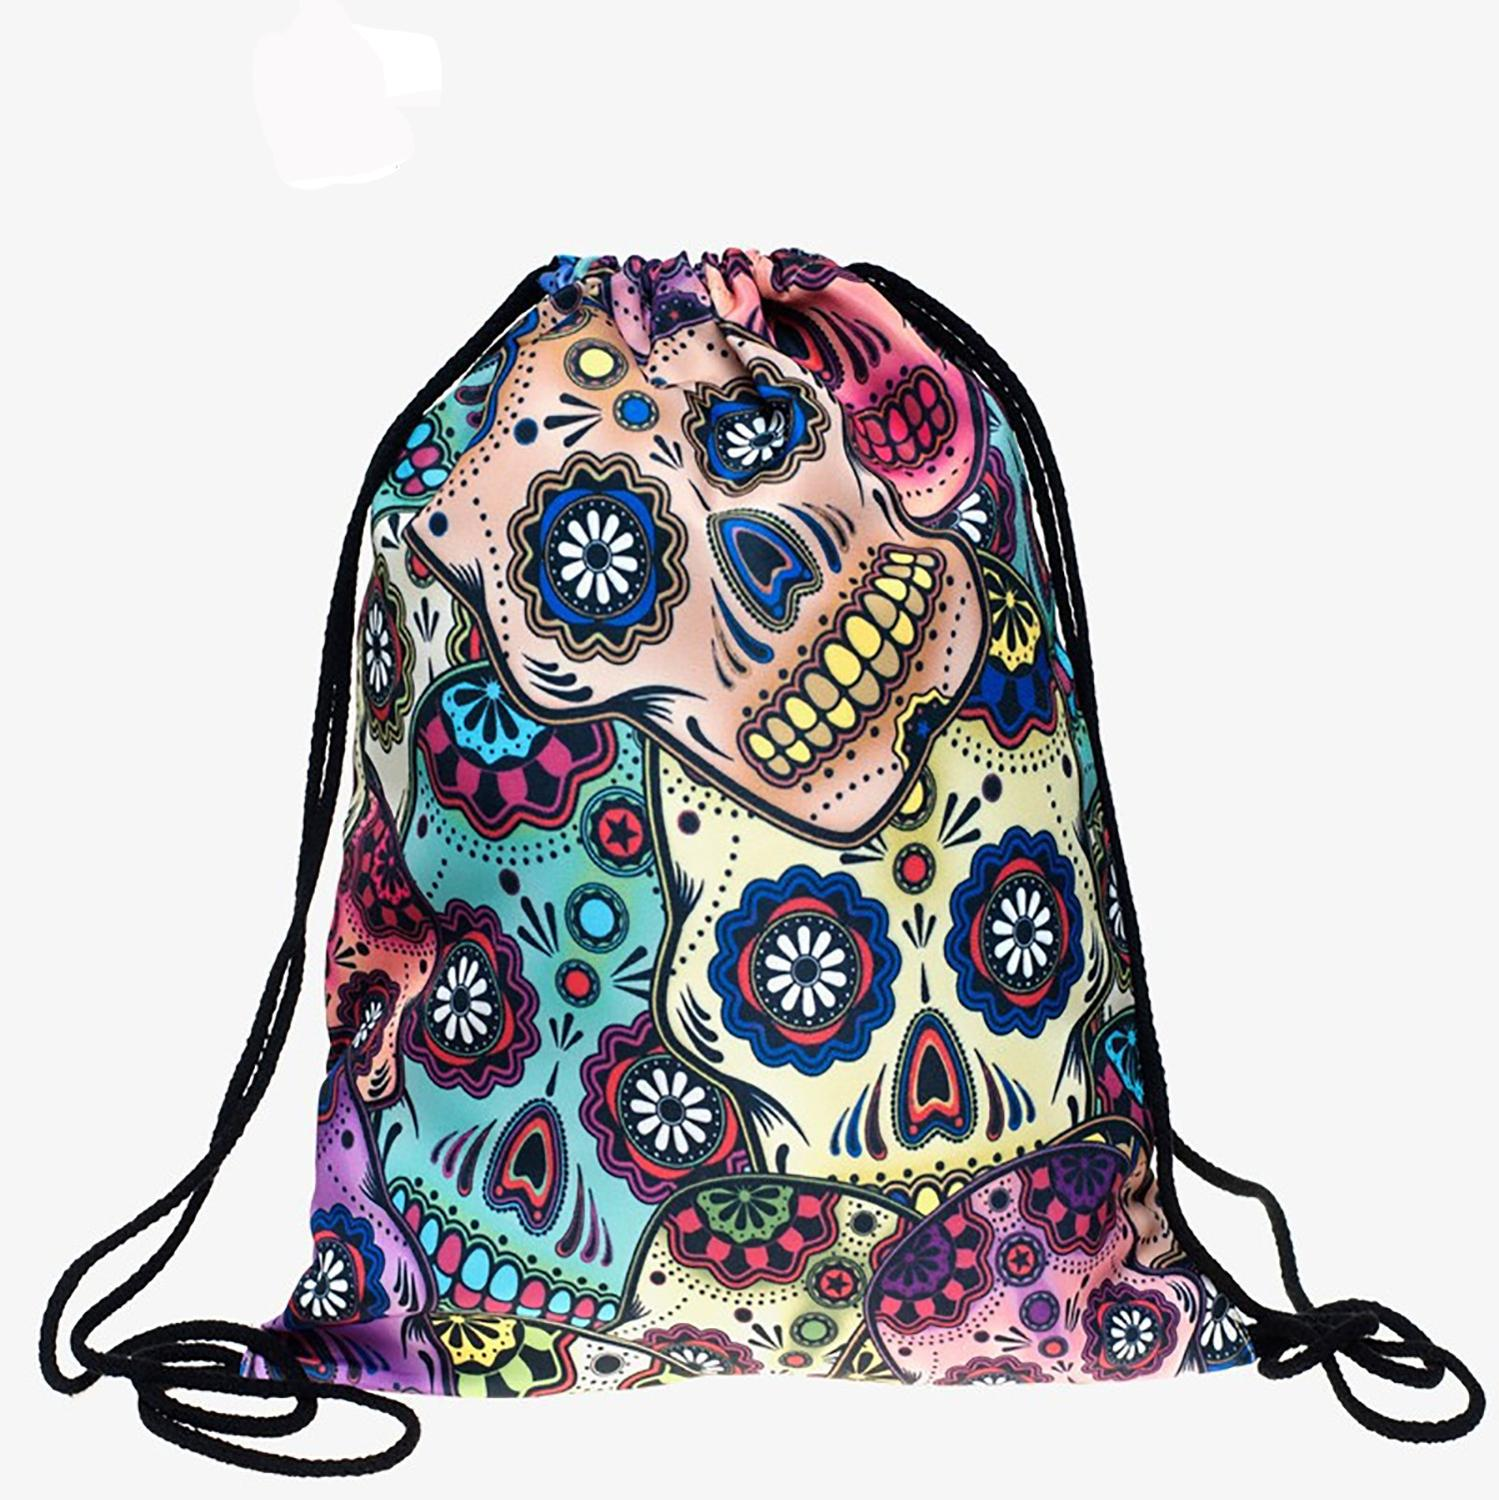 Bundle Pocket Rope Bag 3-D Digital Printing Mexican Skull Bundle Pocket For Tie Backpack Women Bags Woman Shoulder Bag Factory